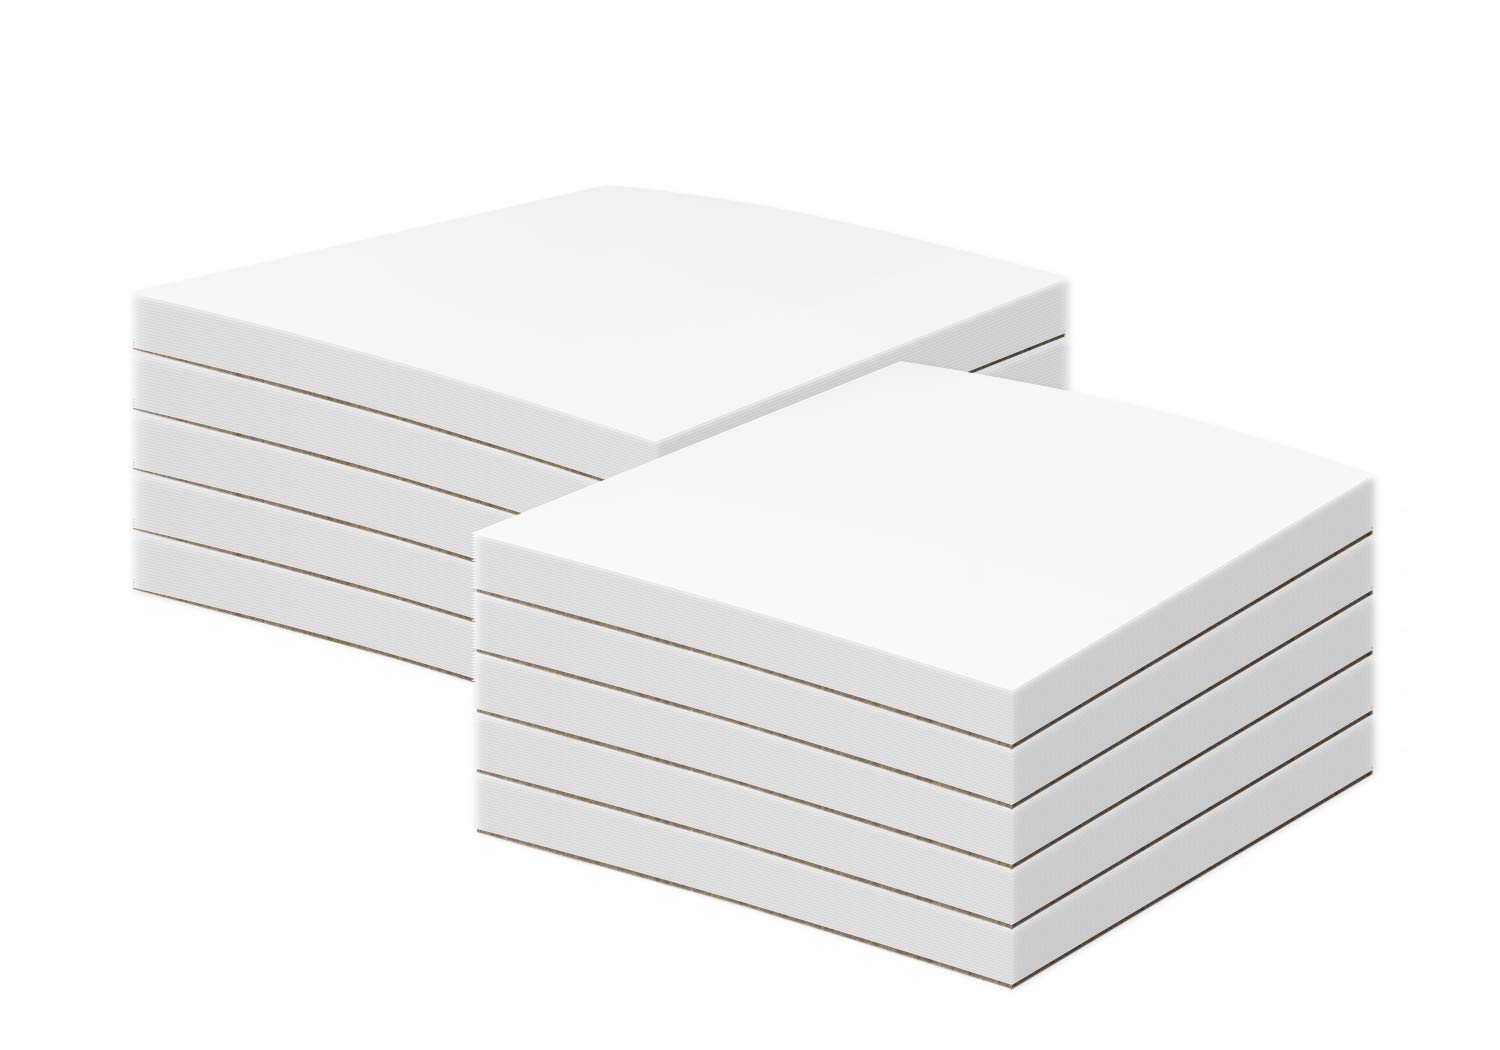 White Memo Pads, 50 Sheets Per Pad, (10 Pads Per Pack) with a Chipboard on the Back. (8 1/2 x 11)